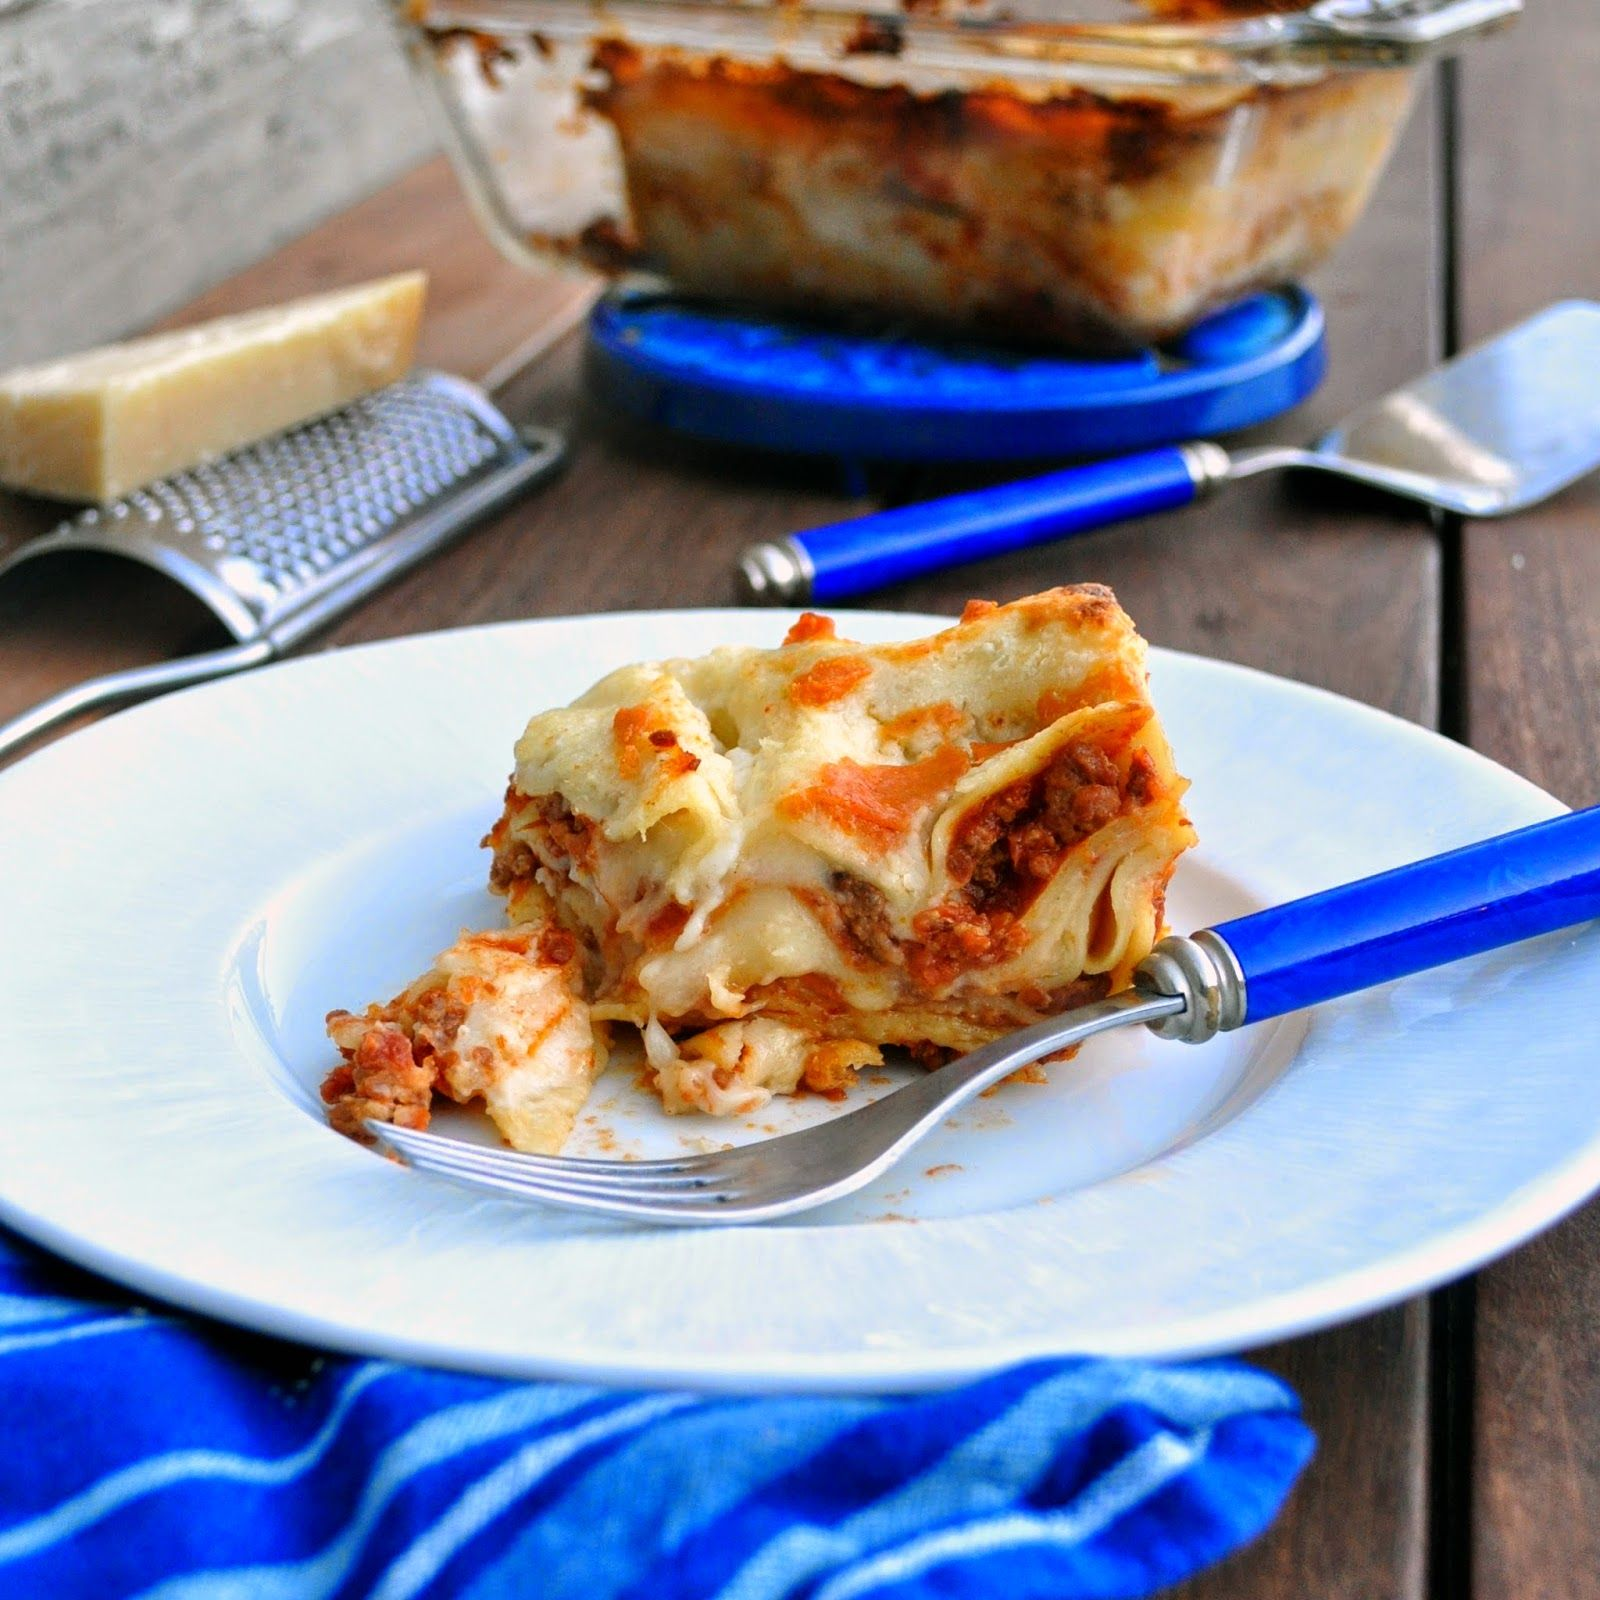 In this traditional Italian lasagna, the savory bolognese sauce and the creamy besciamella come together in a perfectly cheesy, meaty  and saucy dish. So yummy! Cooking with Manuela: Traditional Italian Lasagna with Bolognese Sauce